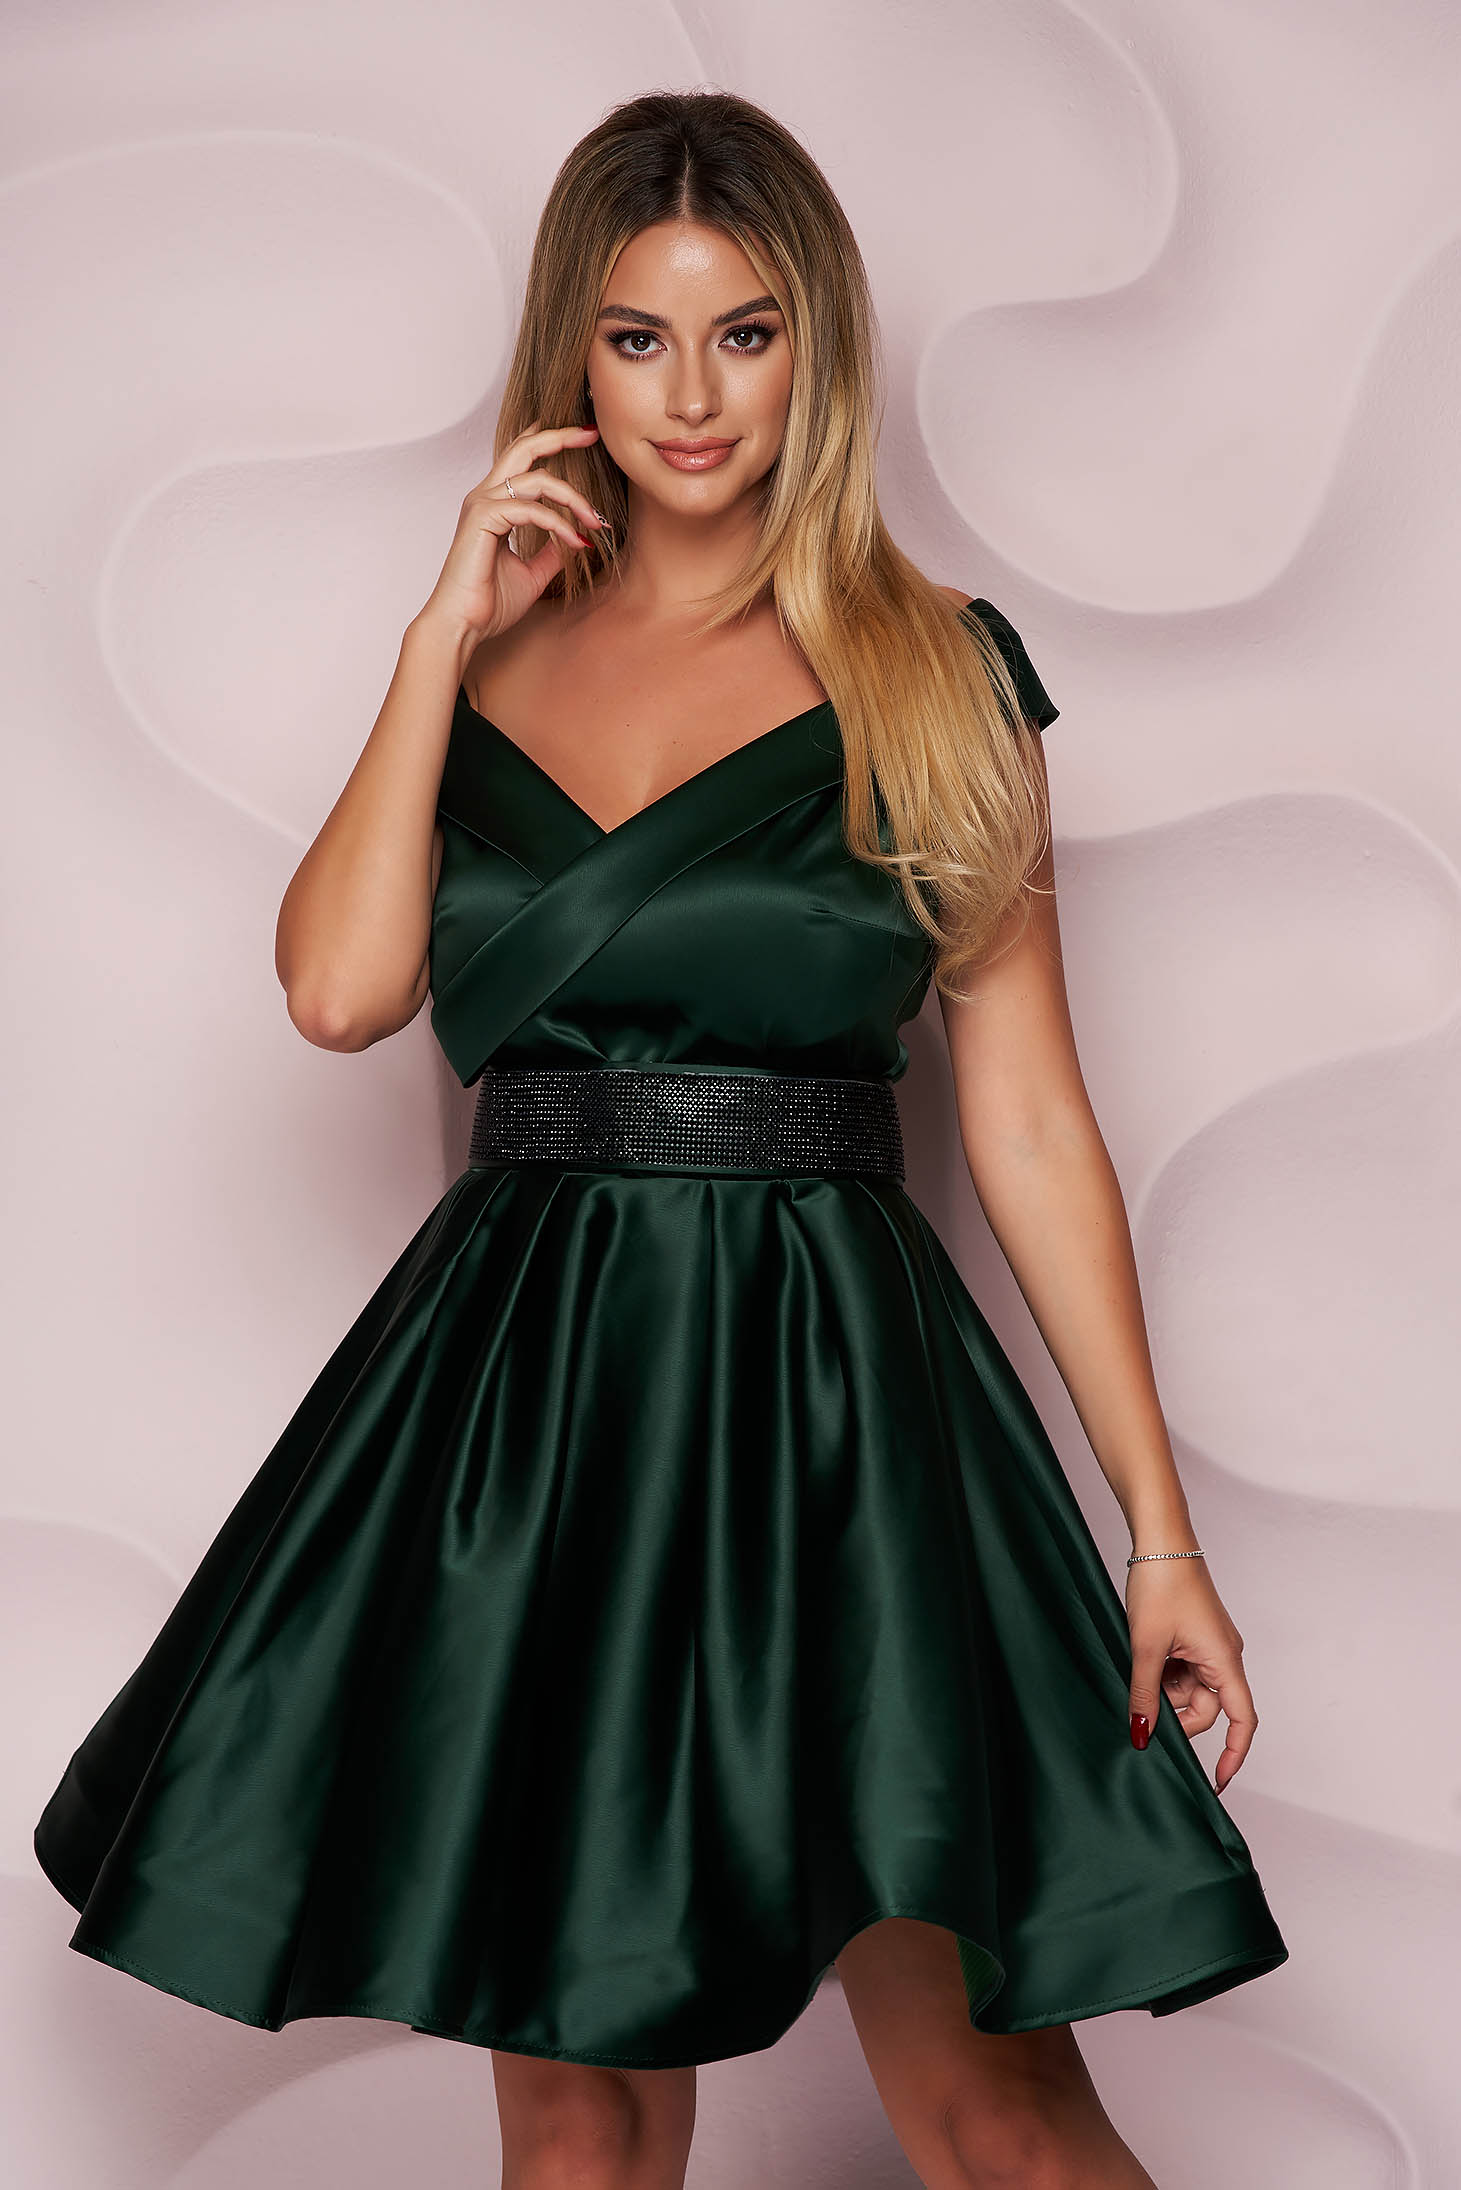 Dirty green dress from satin cloche occasional on the shoulders short cut